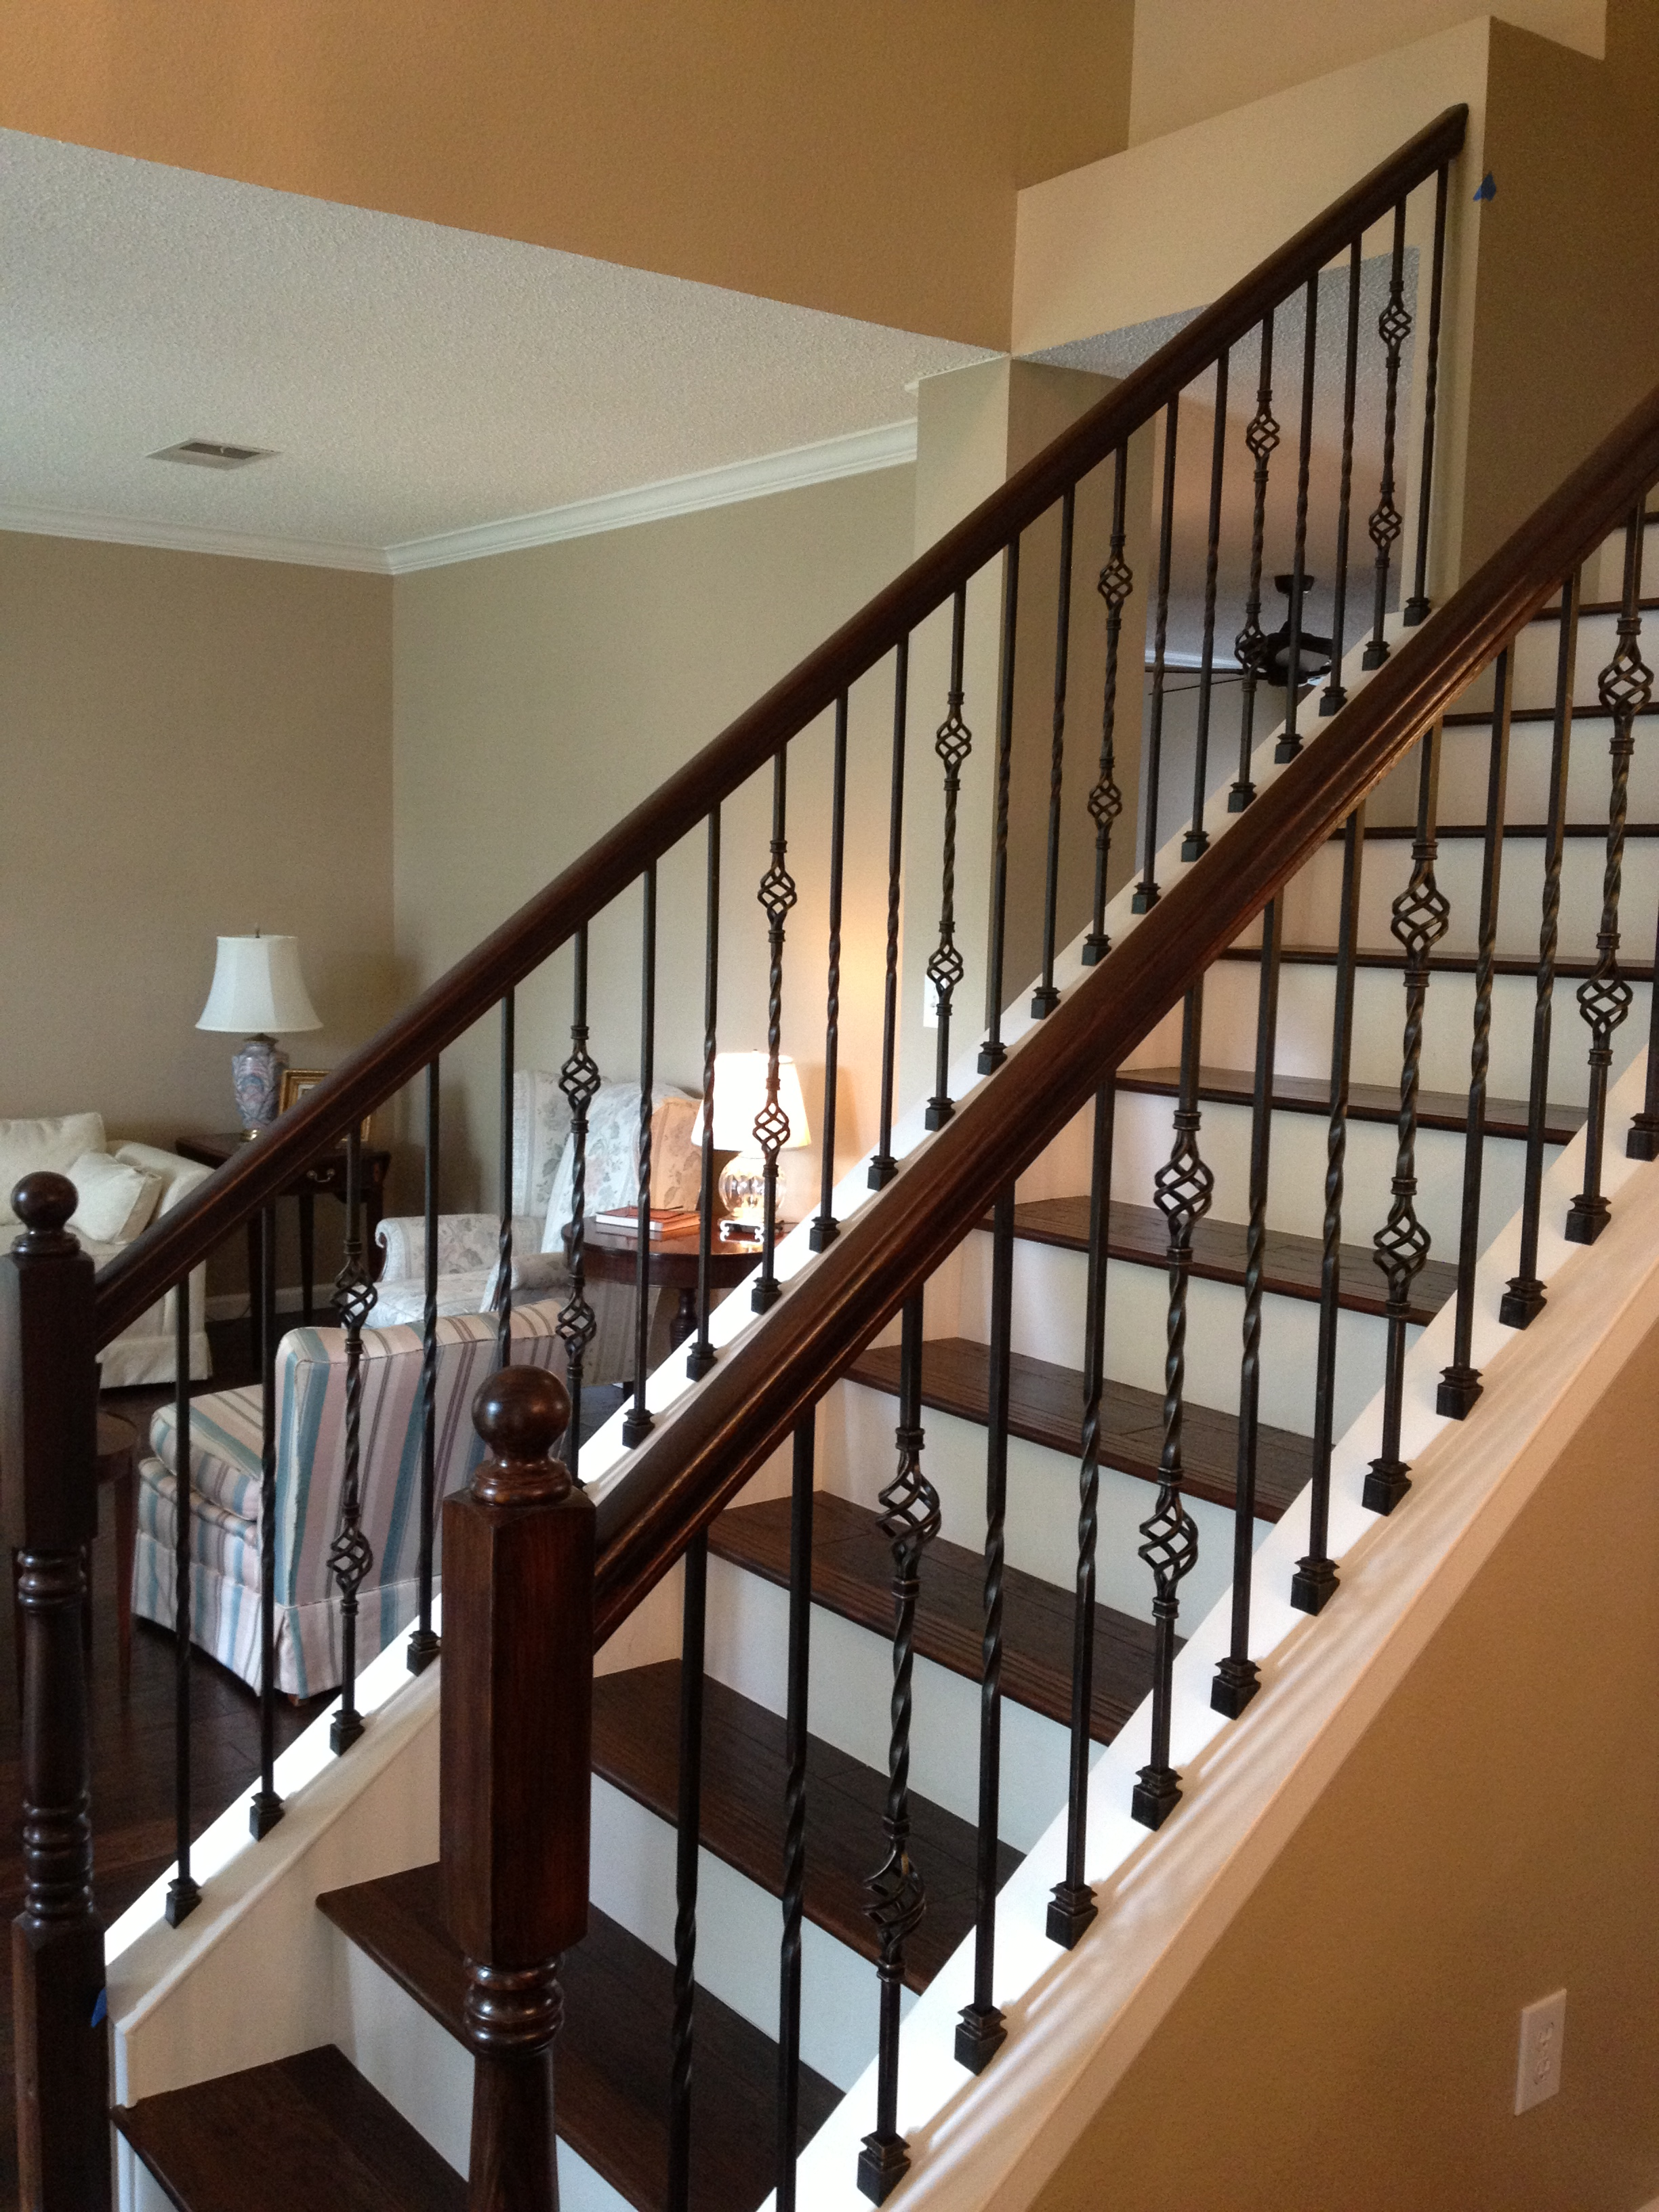 Wrought Iron Staircase Designs Image From Http Vipservices4u Wp Content Uploads